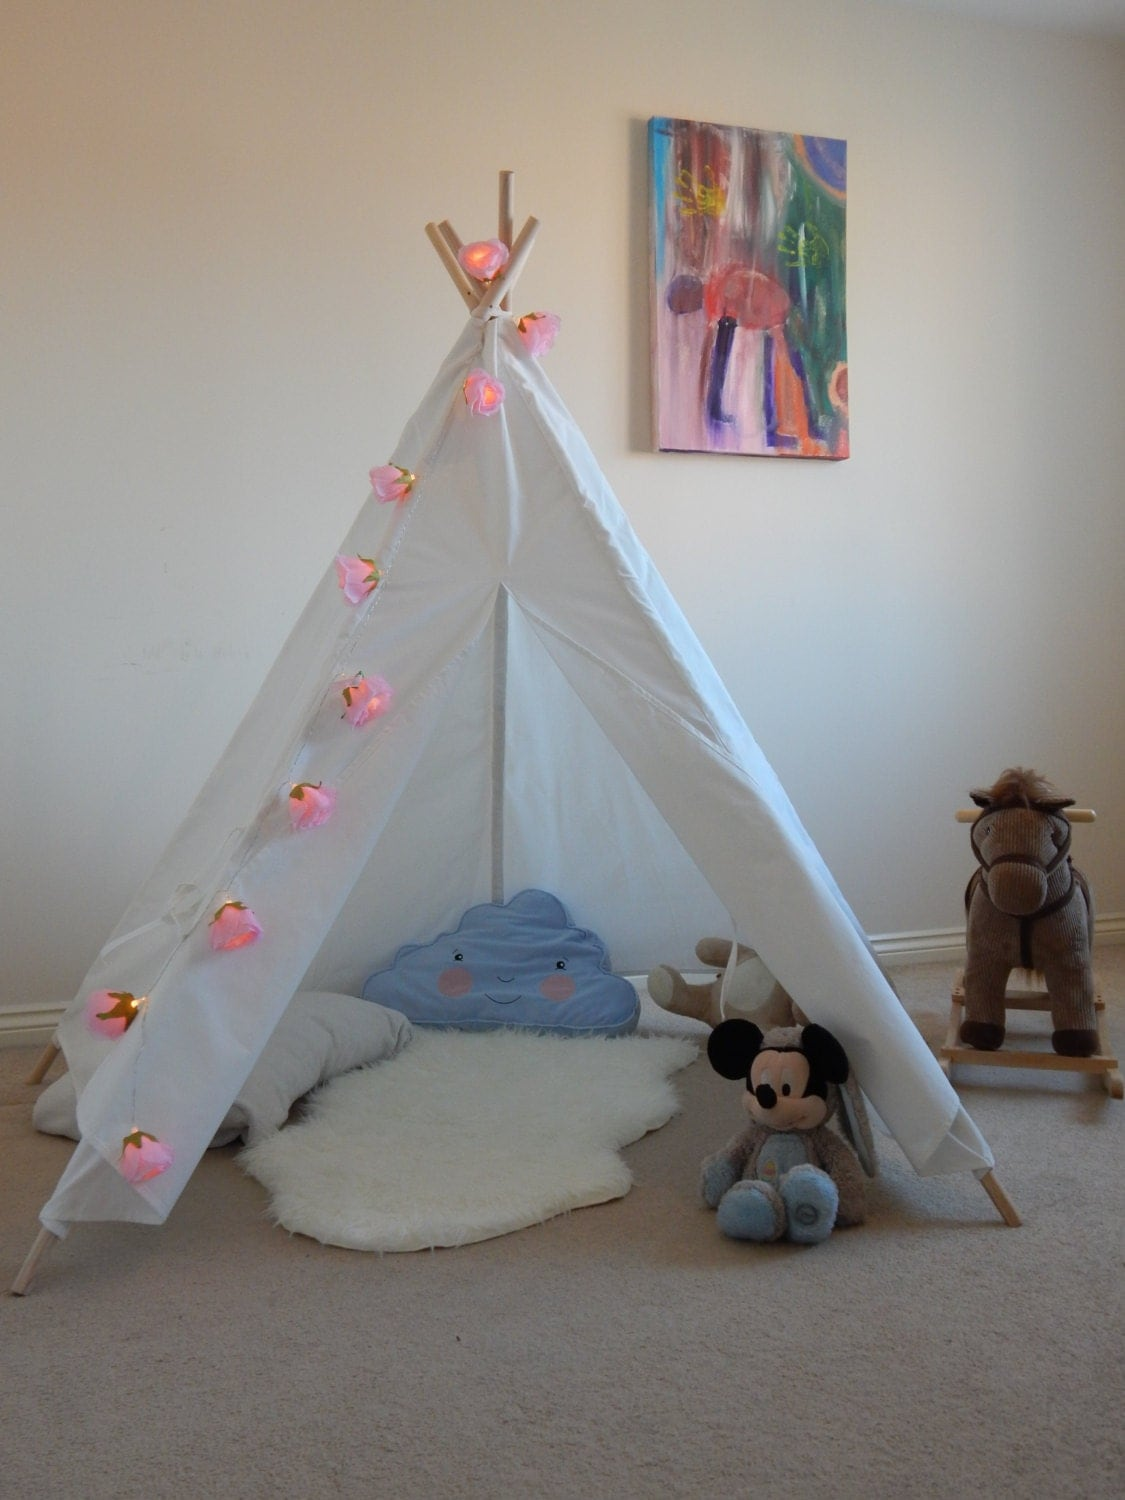 A Tipi to Play with Children